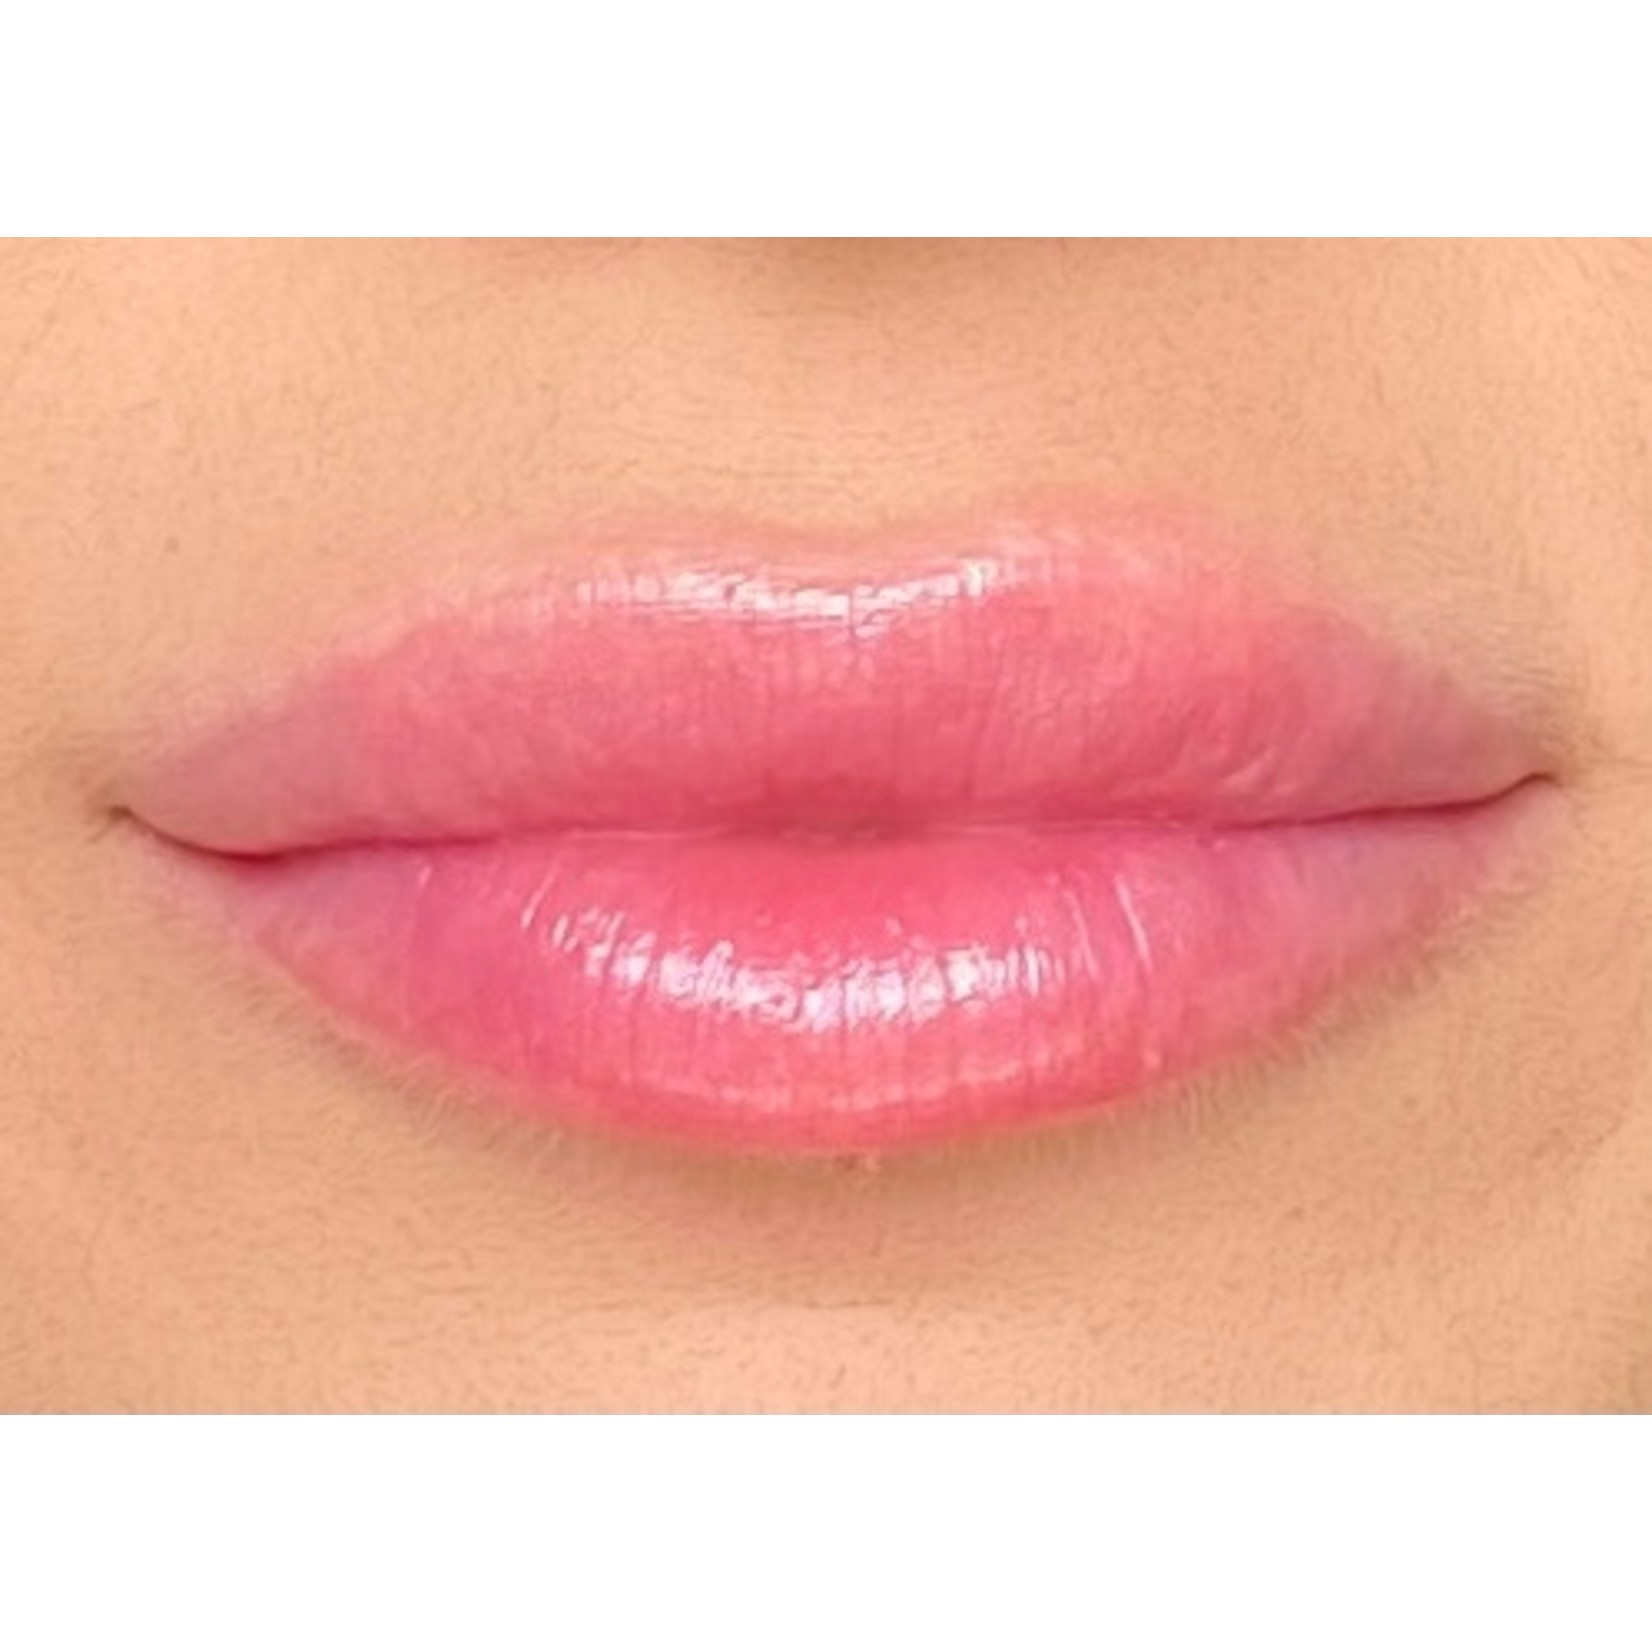 JKC MOOD LIPSTICK - In the Mood